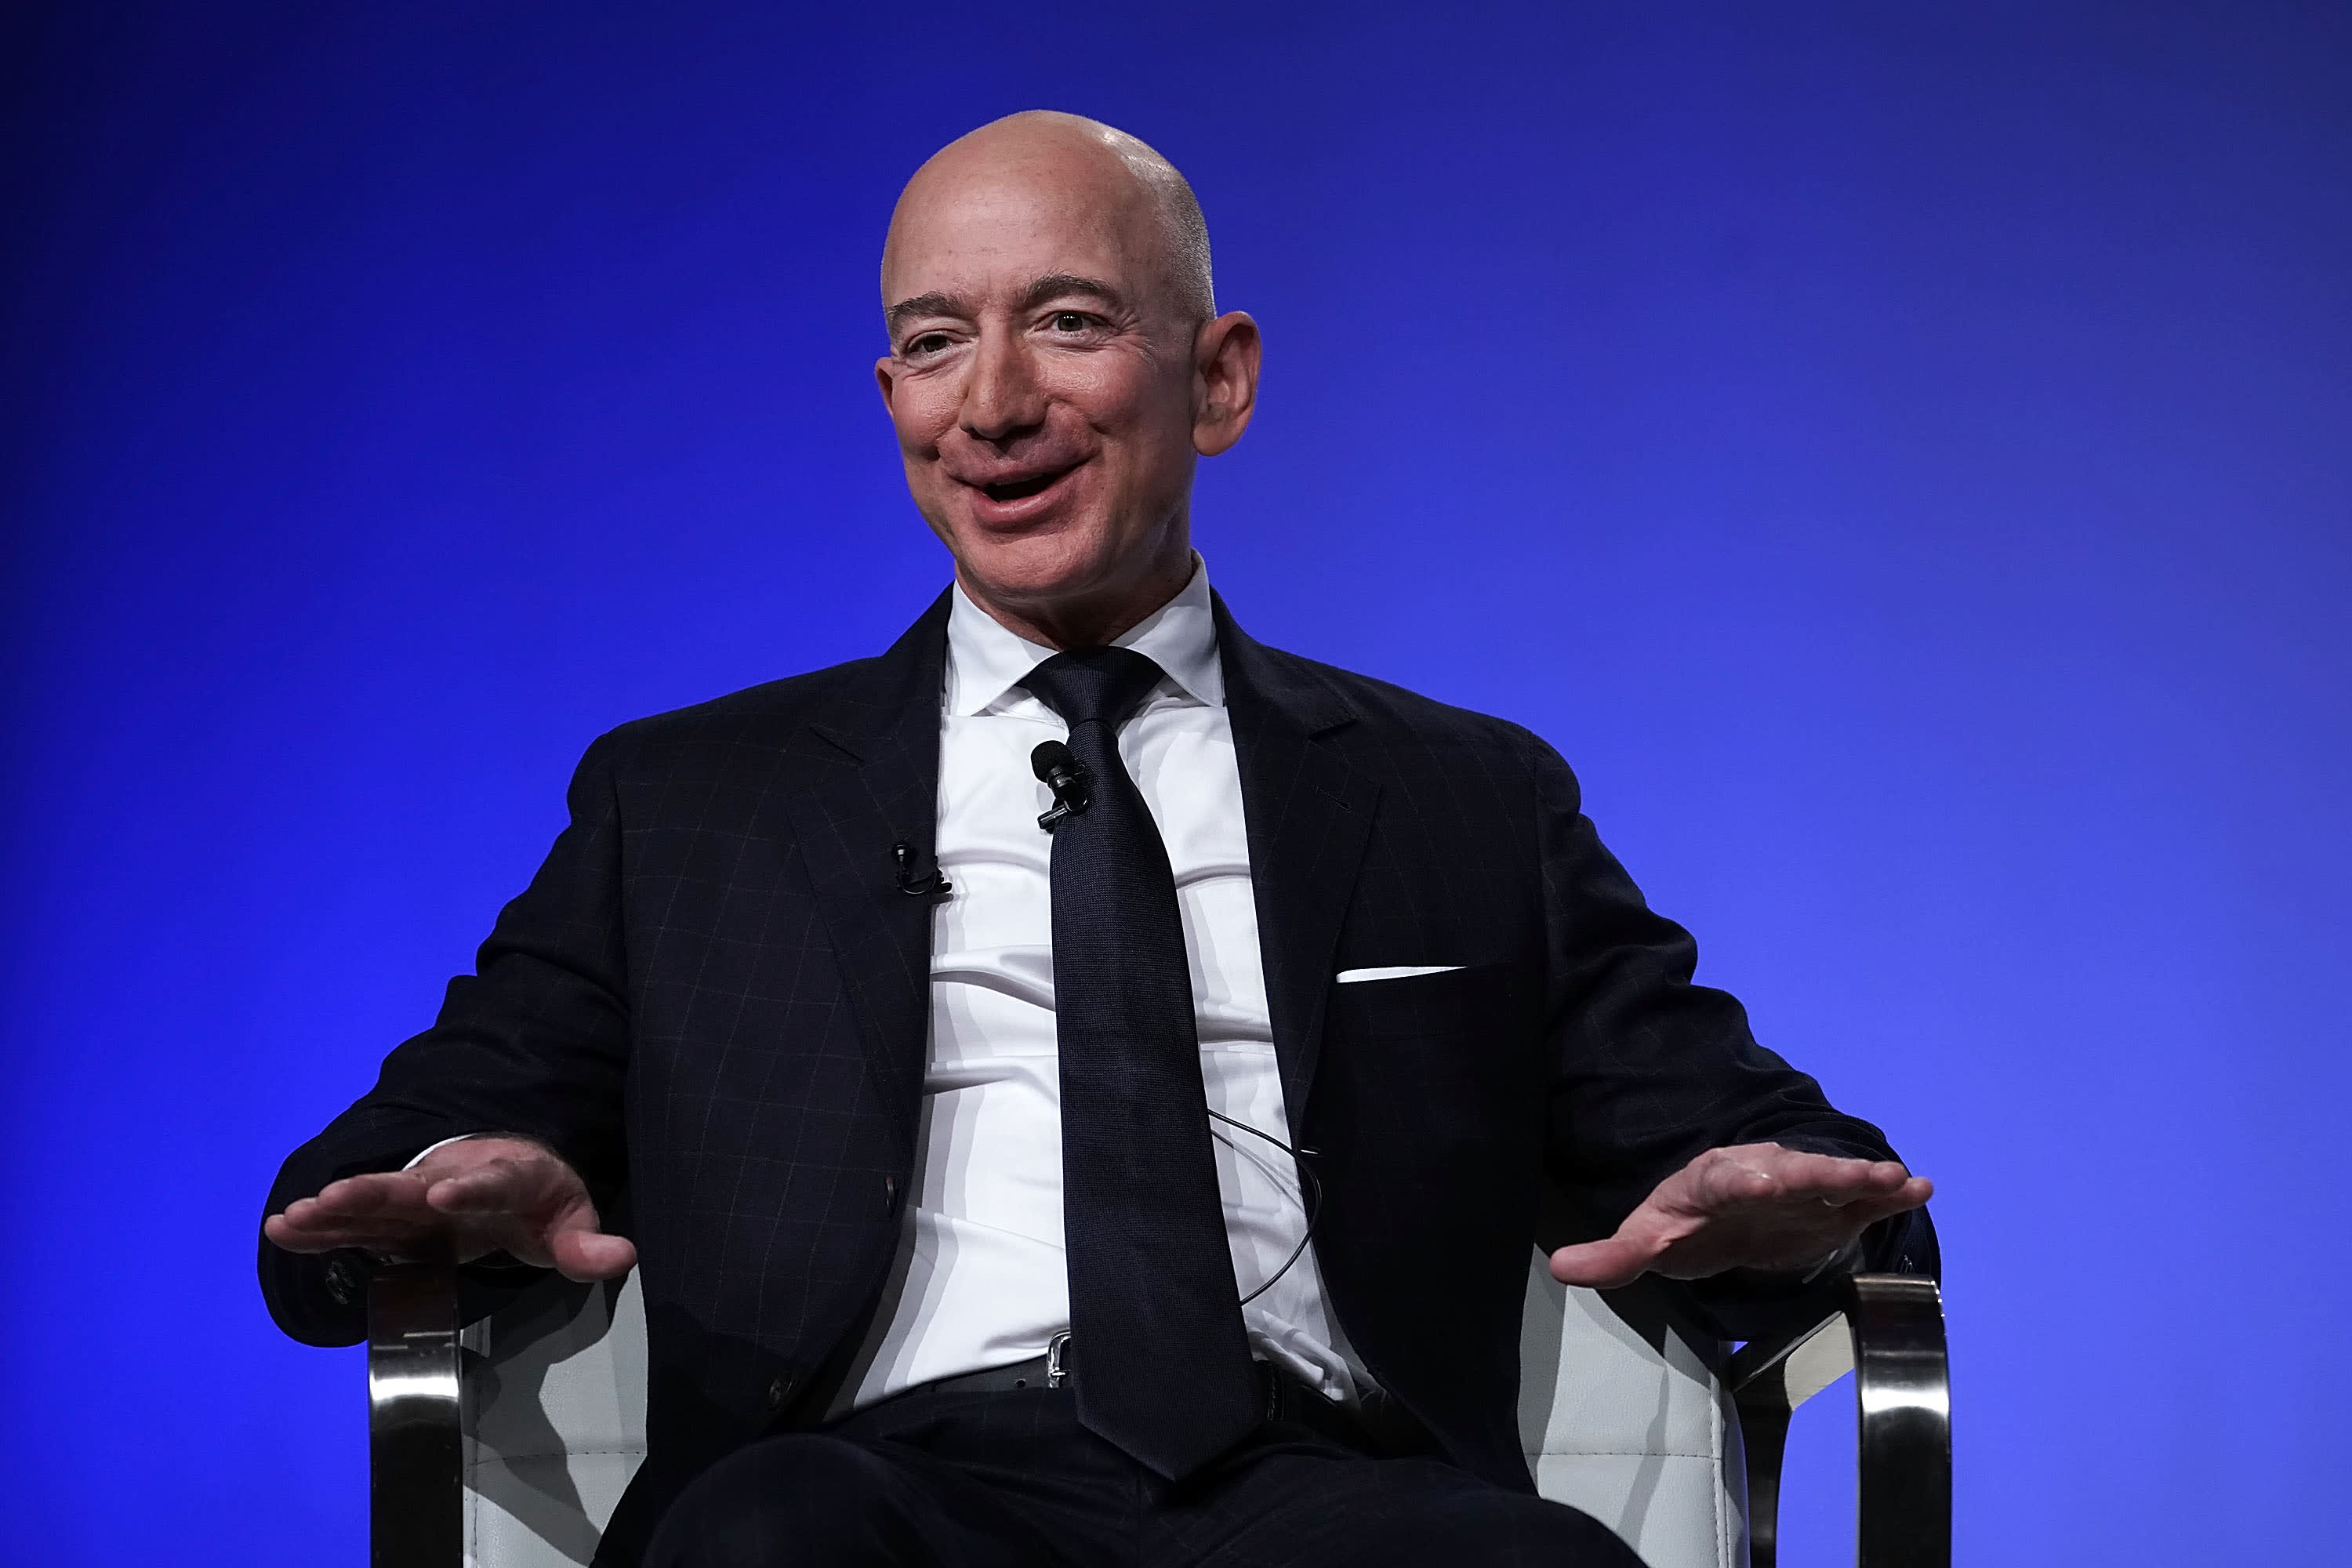 Jeff Bezos used to hate spending money on ads, but told employees in November he 'changed his mind'